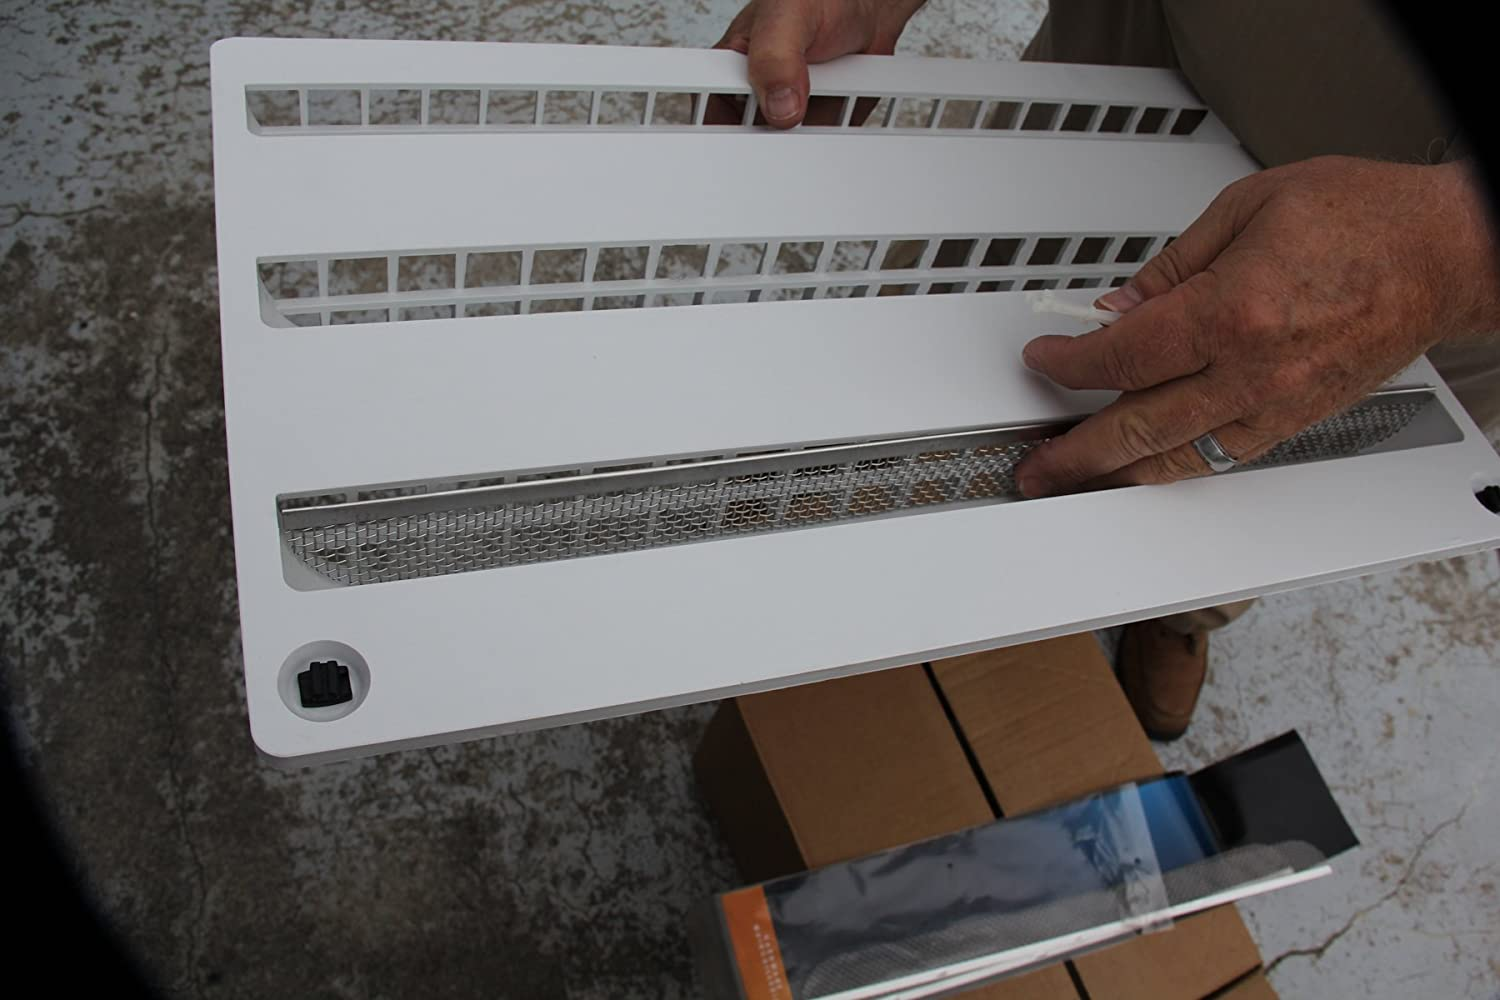 Camco Flying Insect Screen For Dometic Refrigerator Rm2652 Wiring Schematic Vents Protects From Nests 20 X 1 2 Stainless Steel Mesh